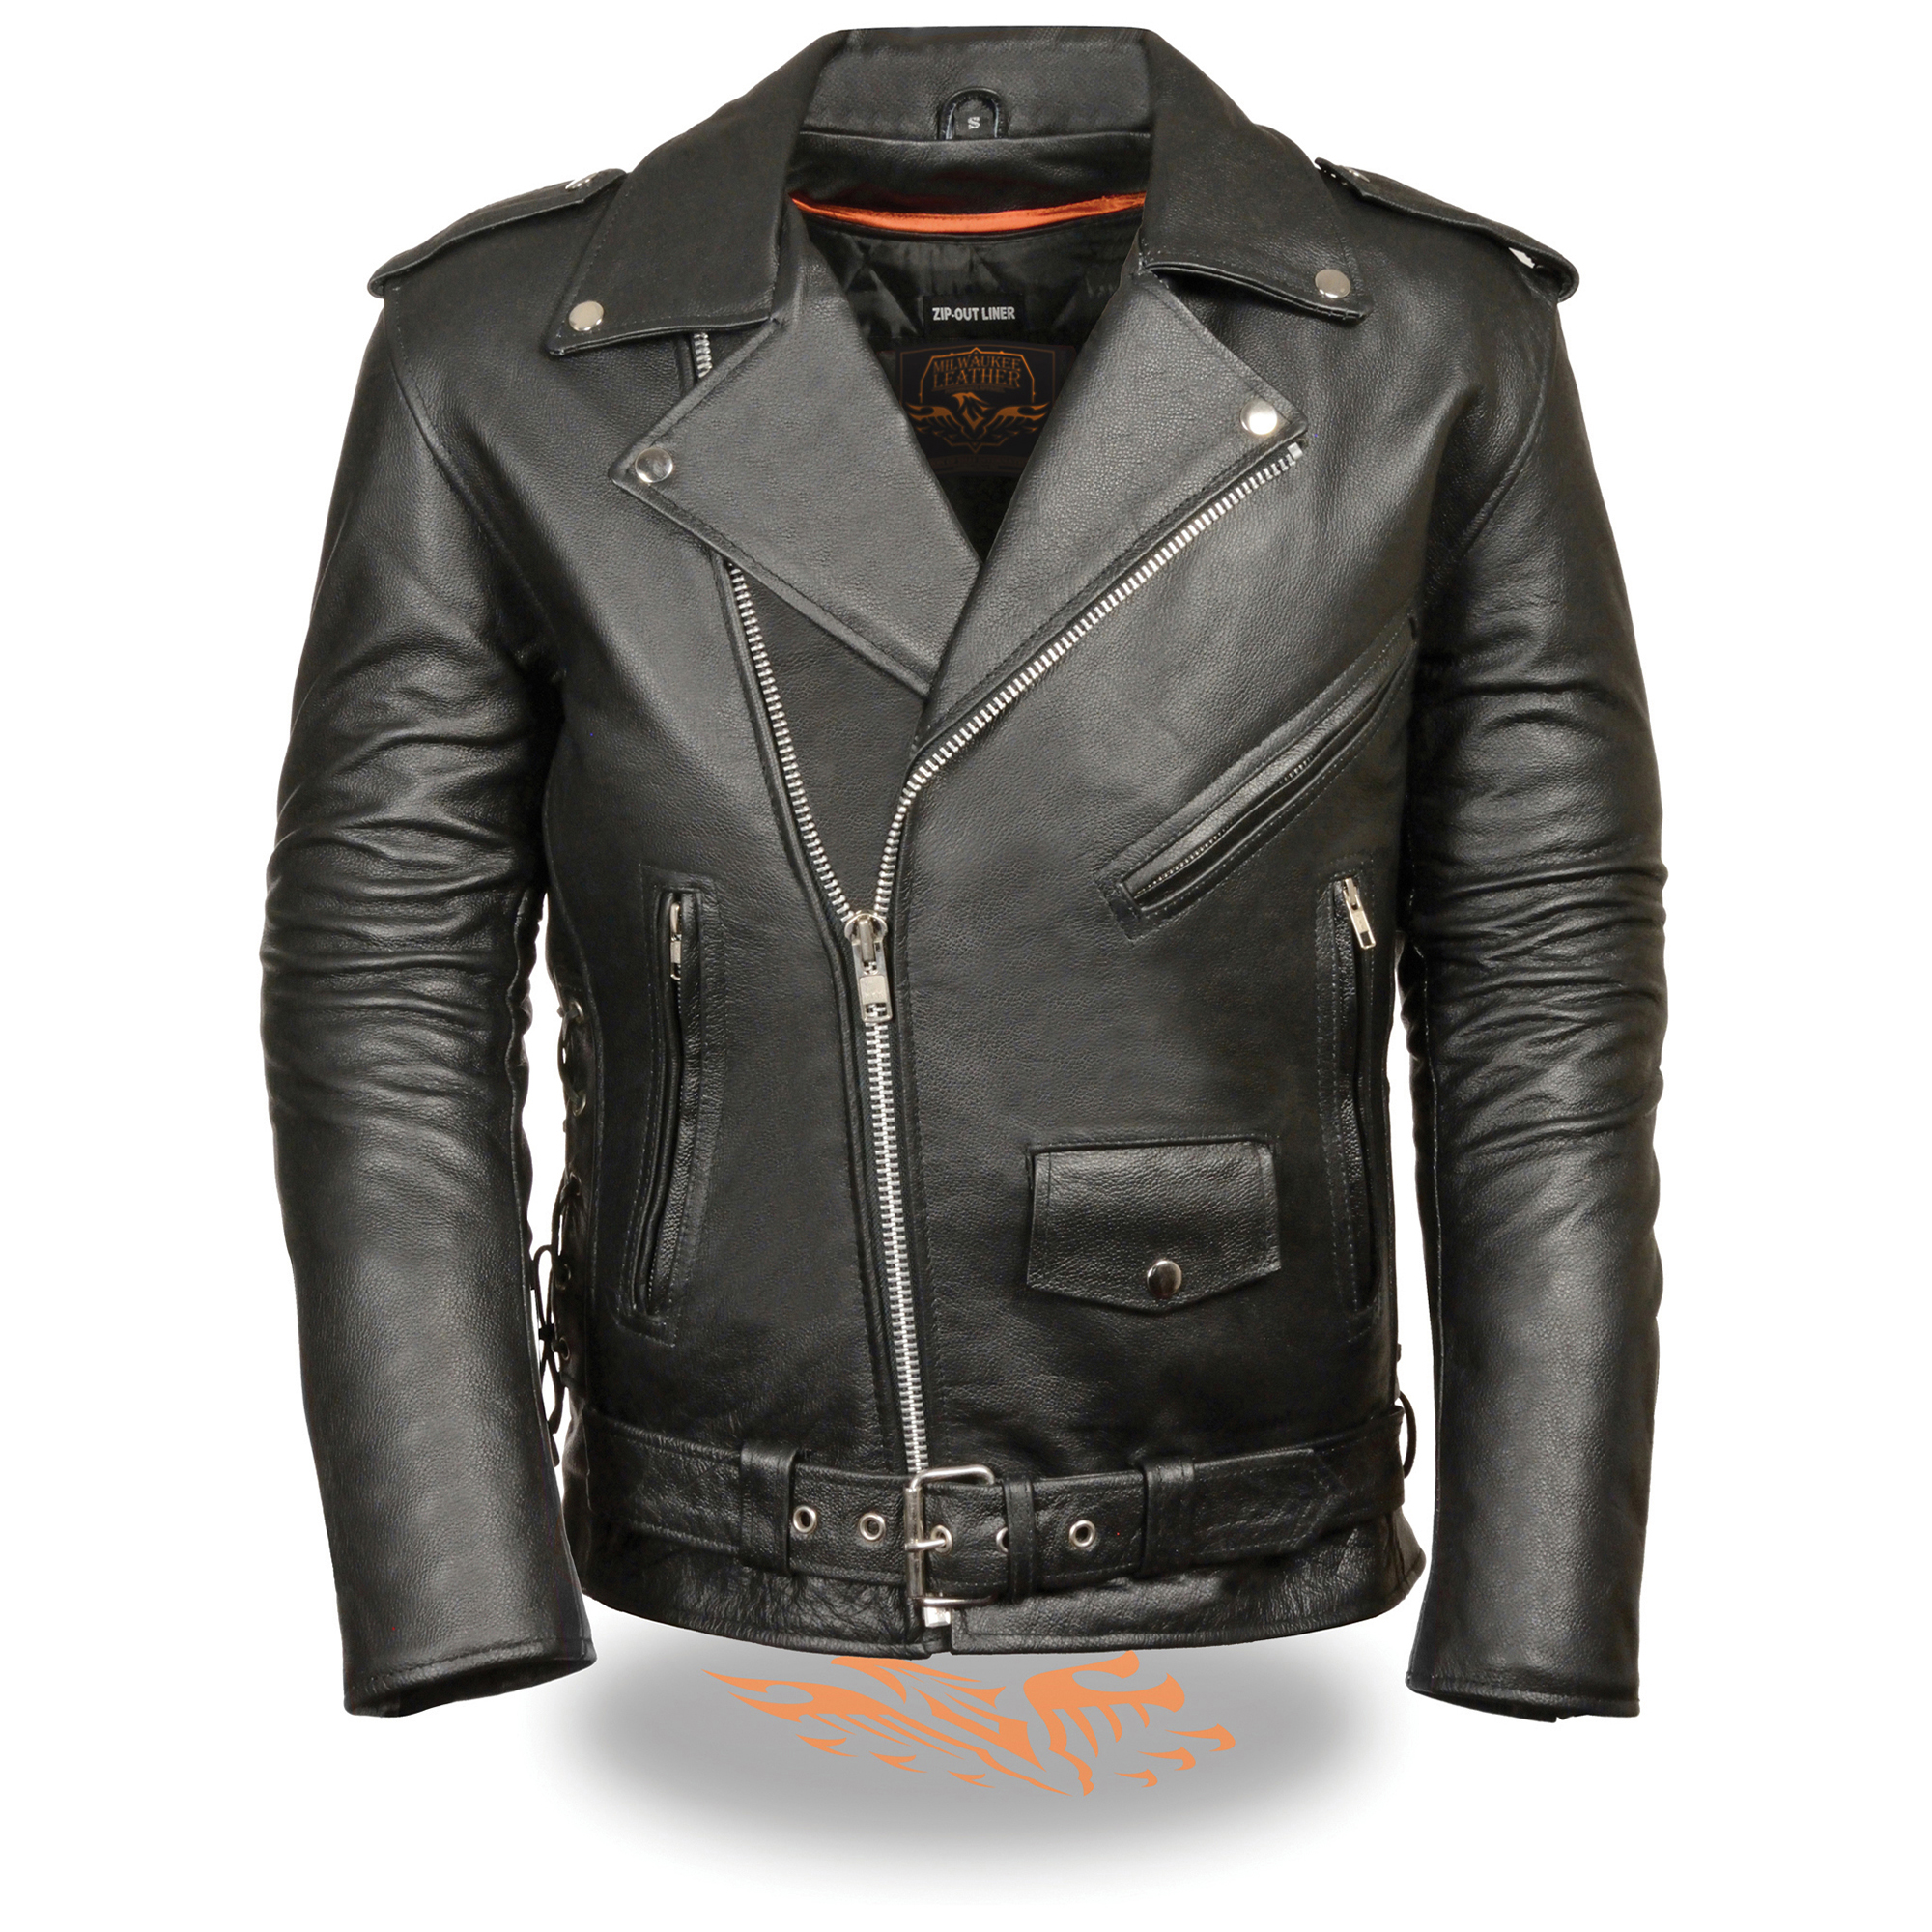 leather jacket motorcycle police mens jackets